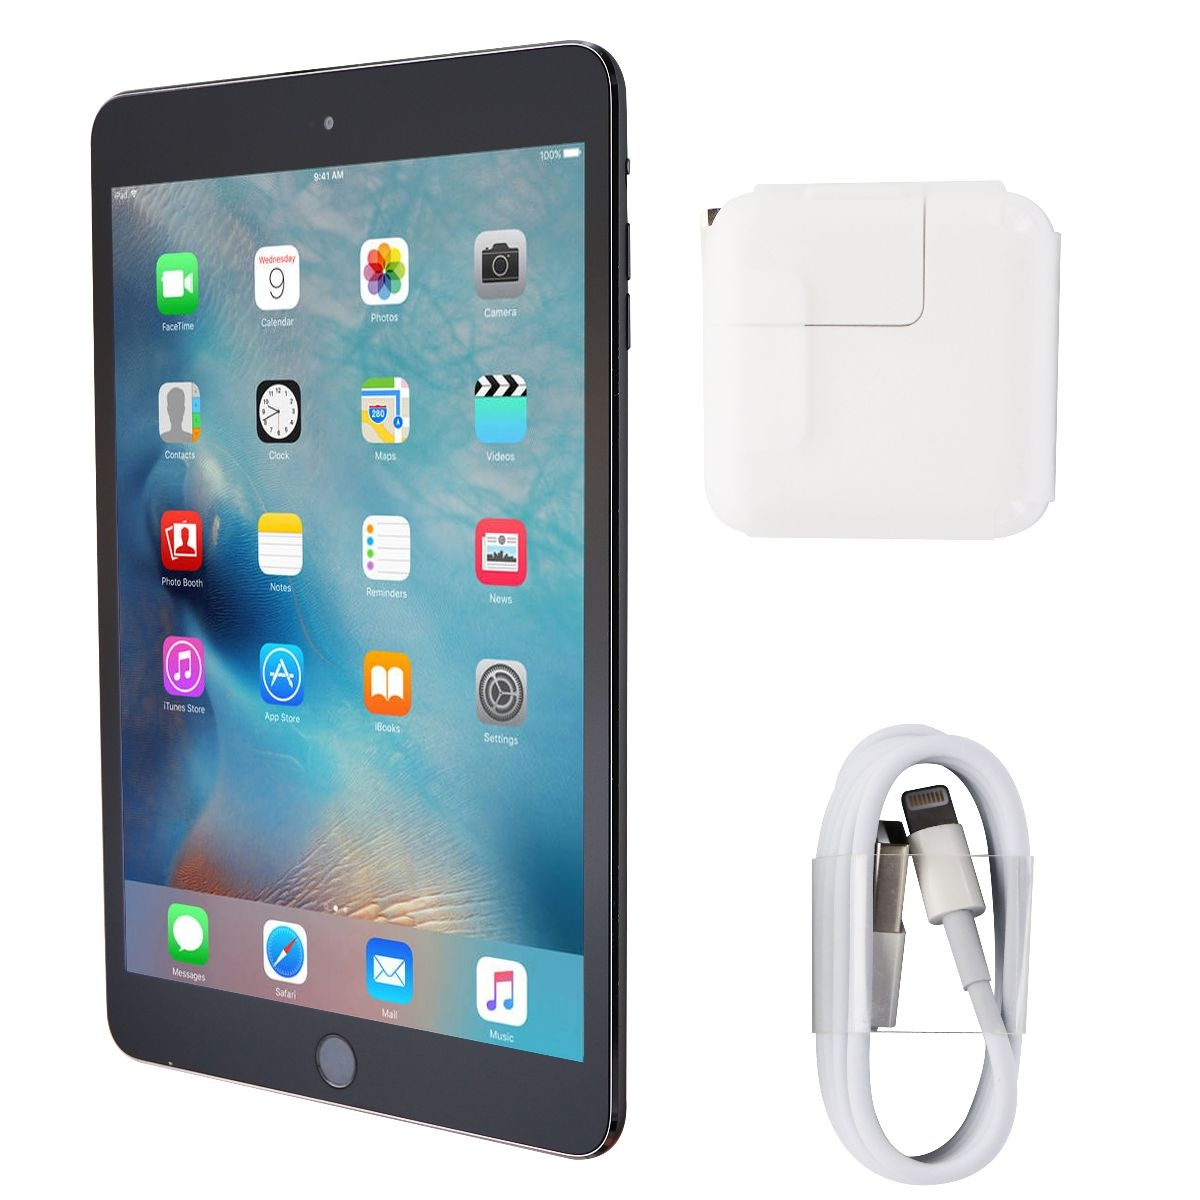 Apple iPad mini 3 (7.9-inch) Tablet (A1599) Wi-Fi Only - 128GB / Space Gray